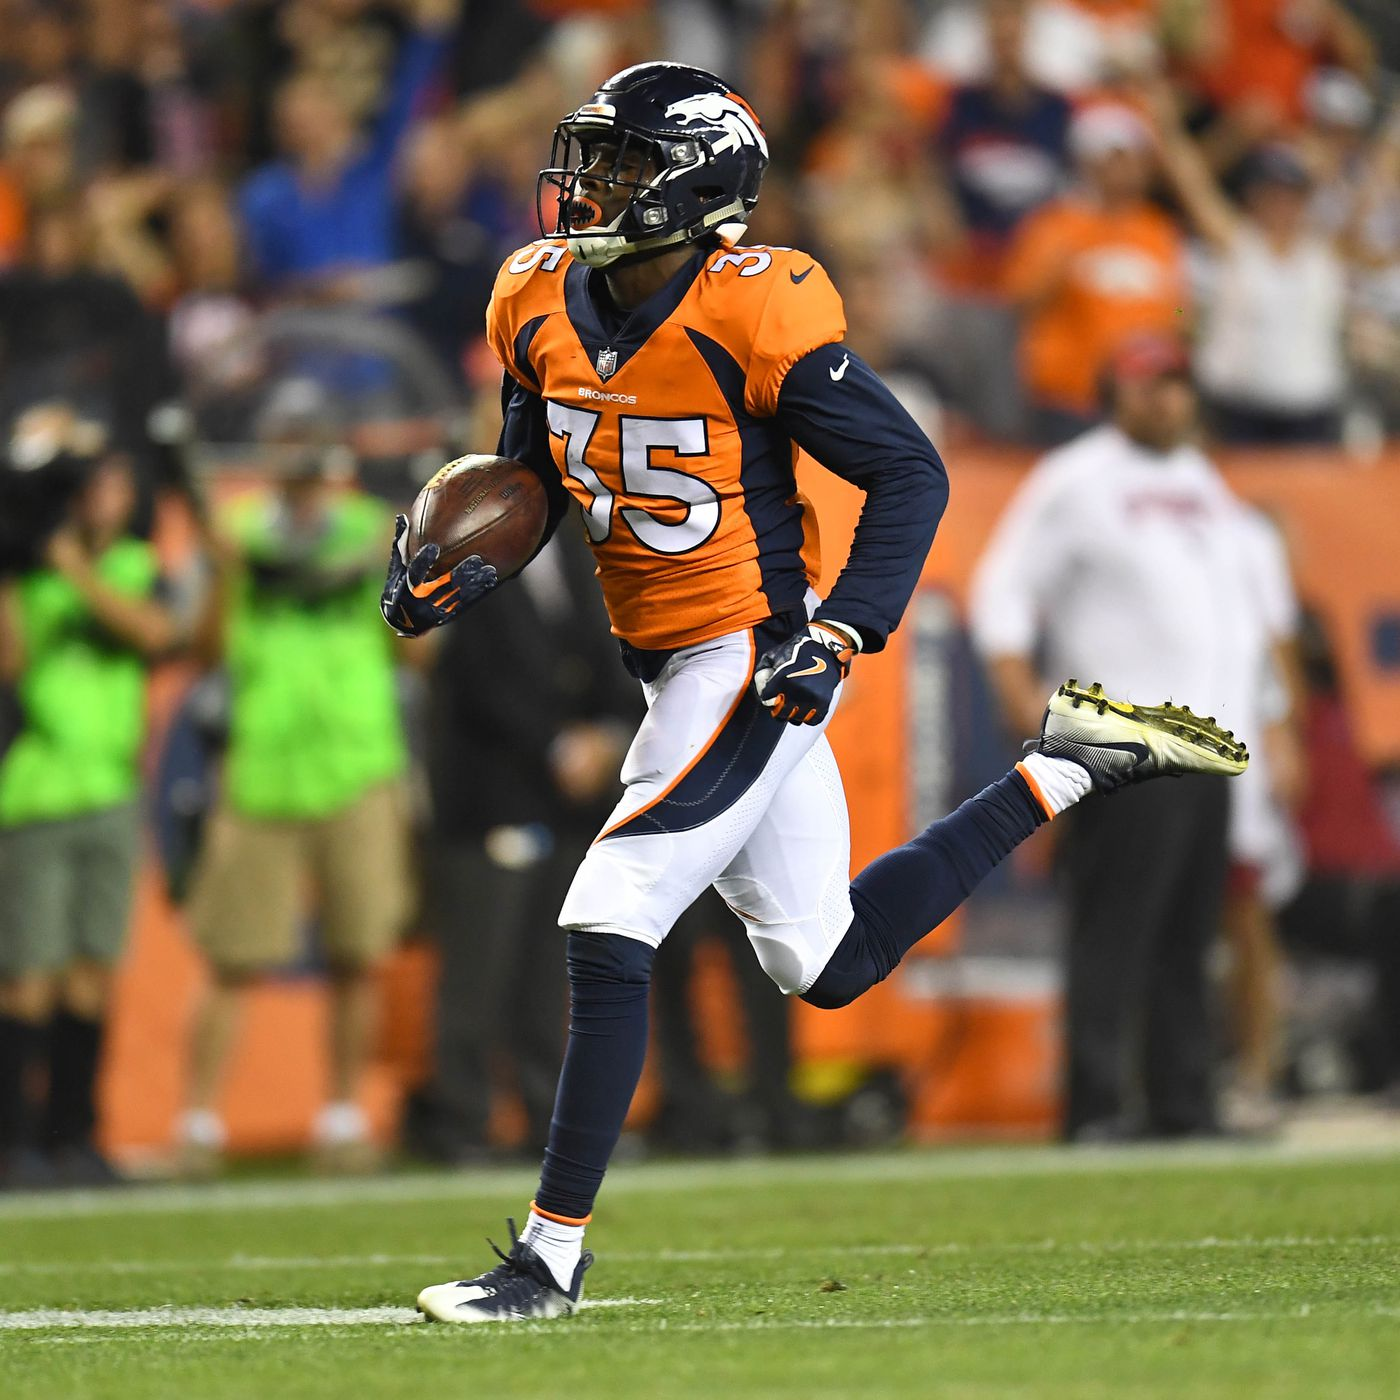 f03d6c2078d Safety Dymonte Thomas made his case to be on the Broncos 53-man roster on  Friday night